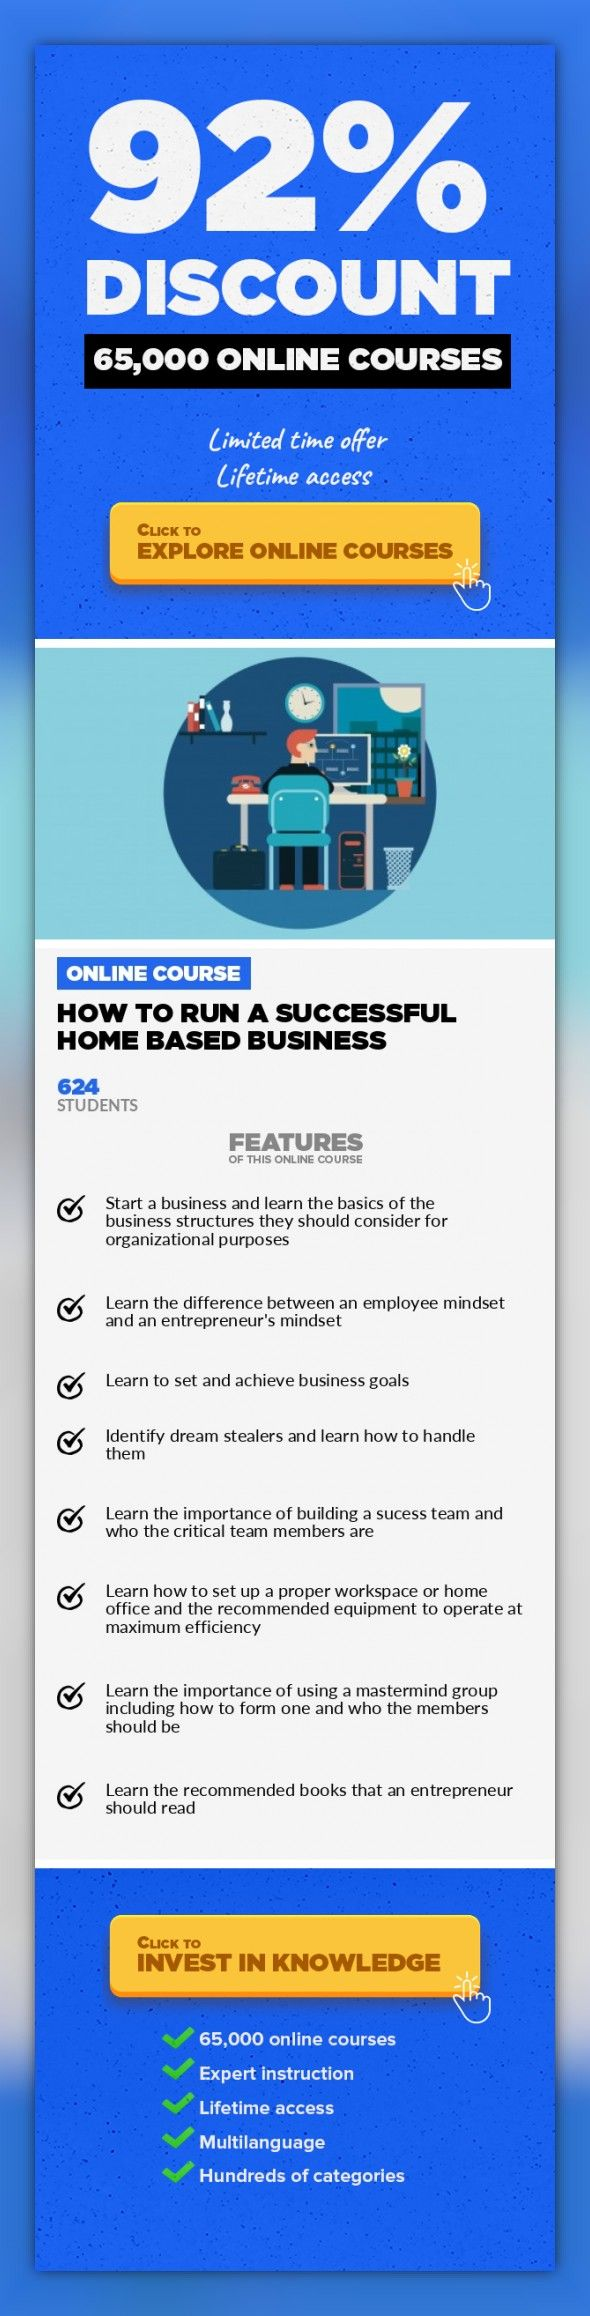 How to Run a Successful Home Based Business Home Business, Business ...